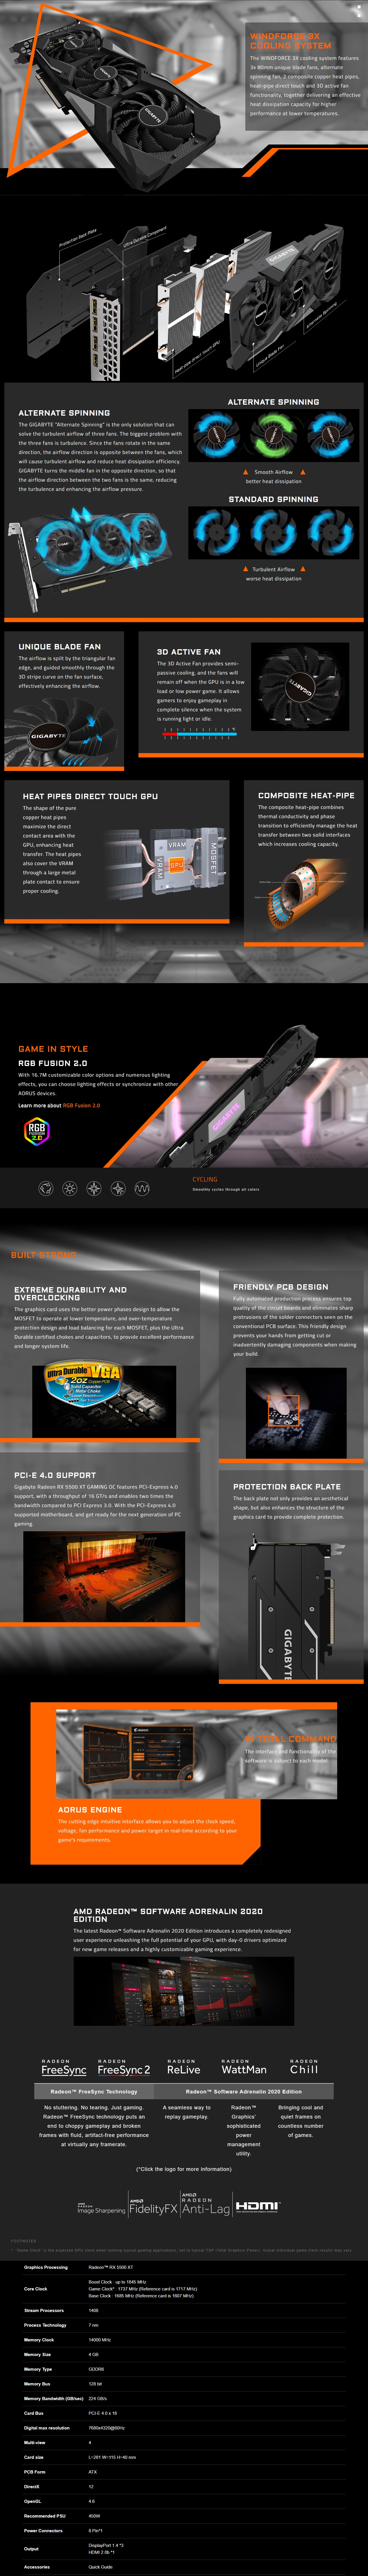 A large marketing image providing additional information about the product Gigabyte Radeon RX 5500 XT GAMING OC 4GB GDDR6 - Additional alt info not provided